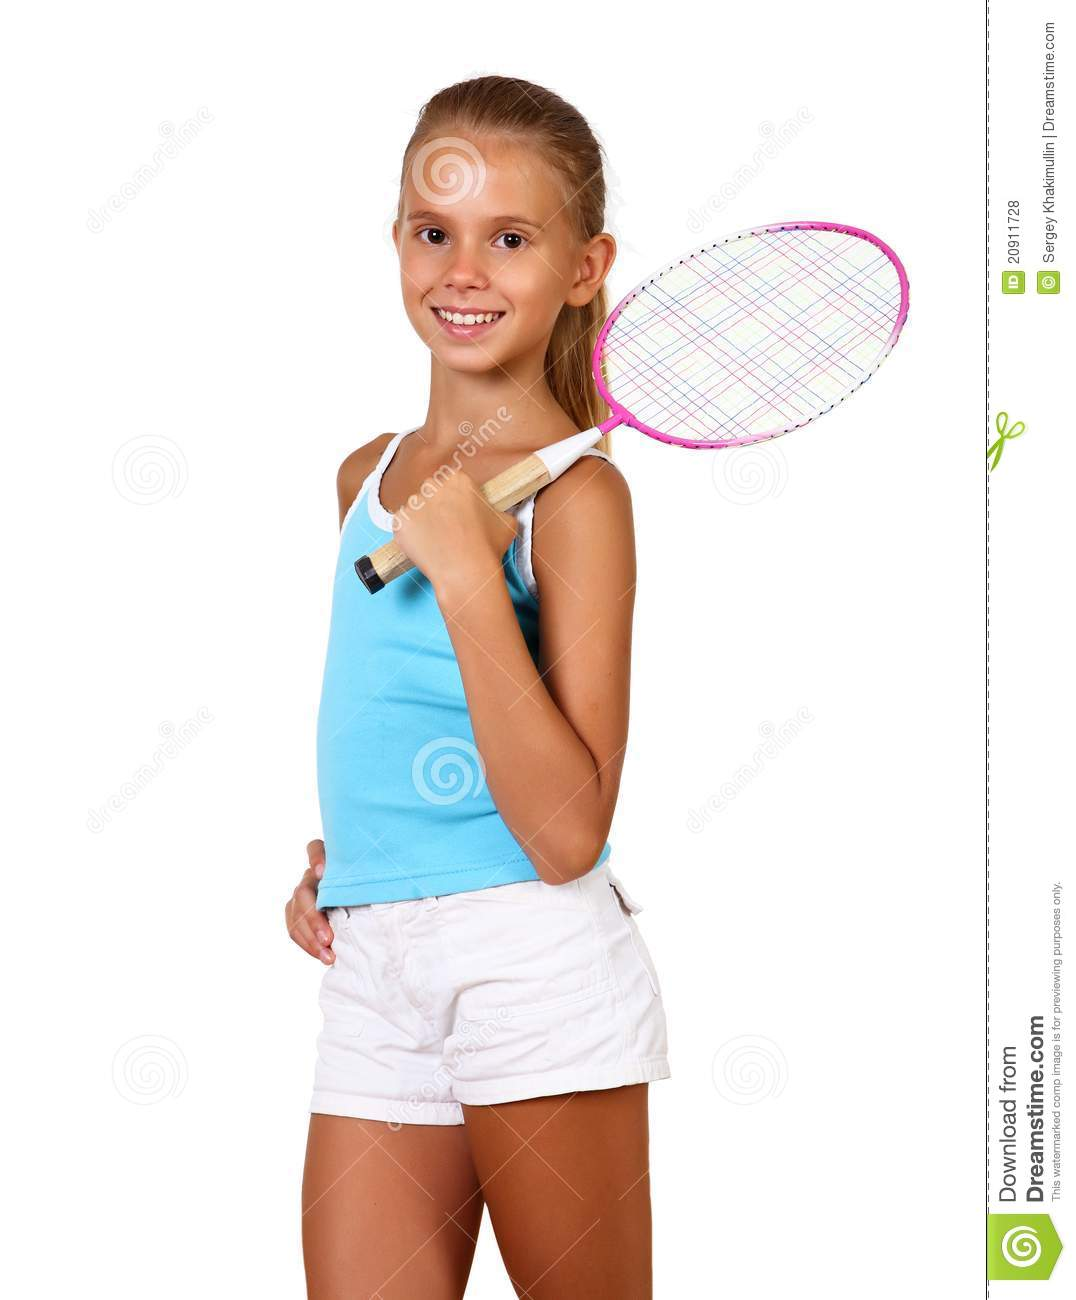 Http Dreamstime Com Royalty Free Stock Photos Pretty Teenage Girl Racket Image20911728